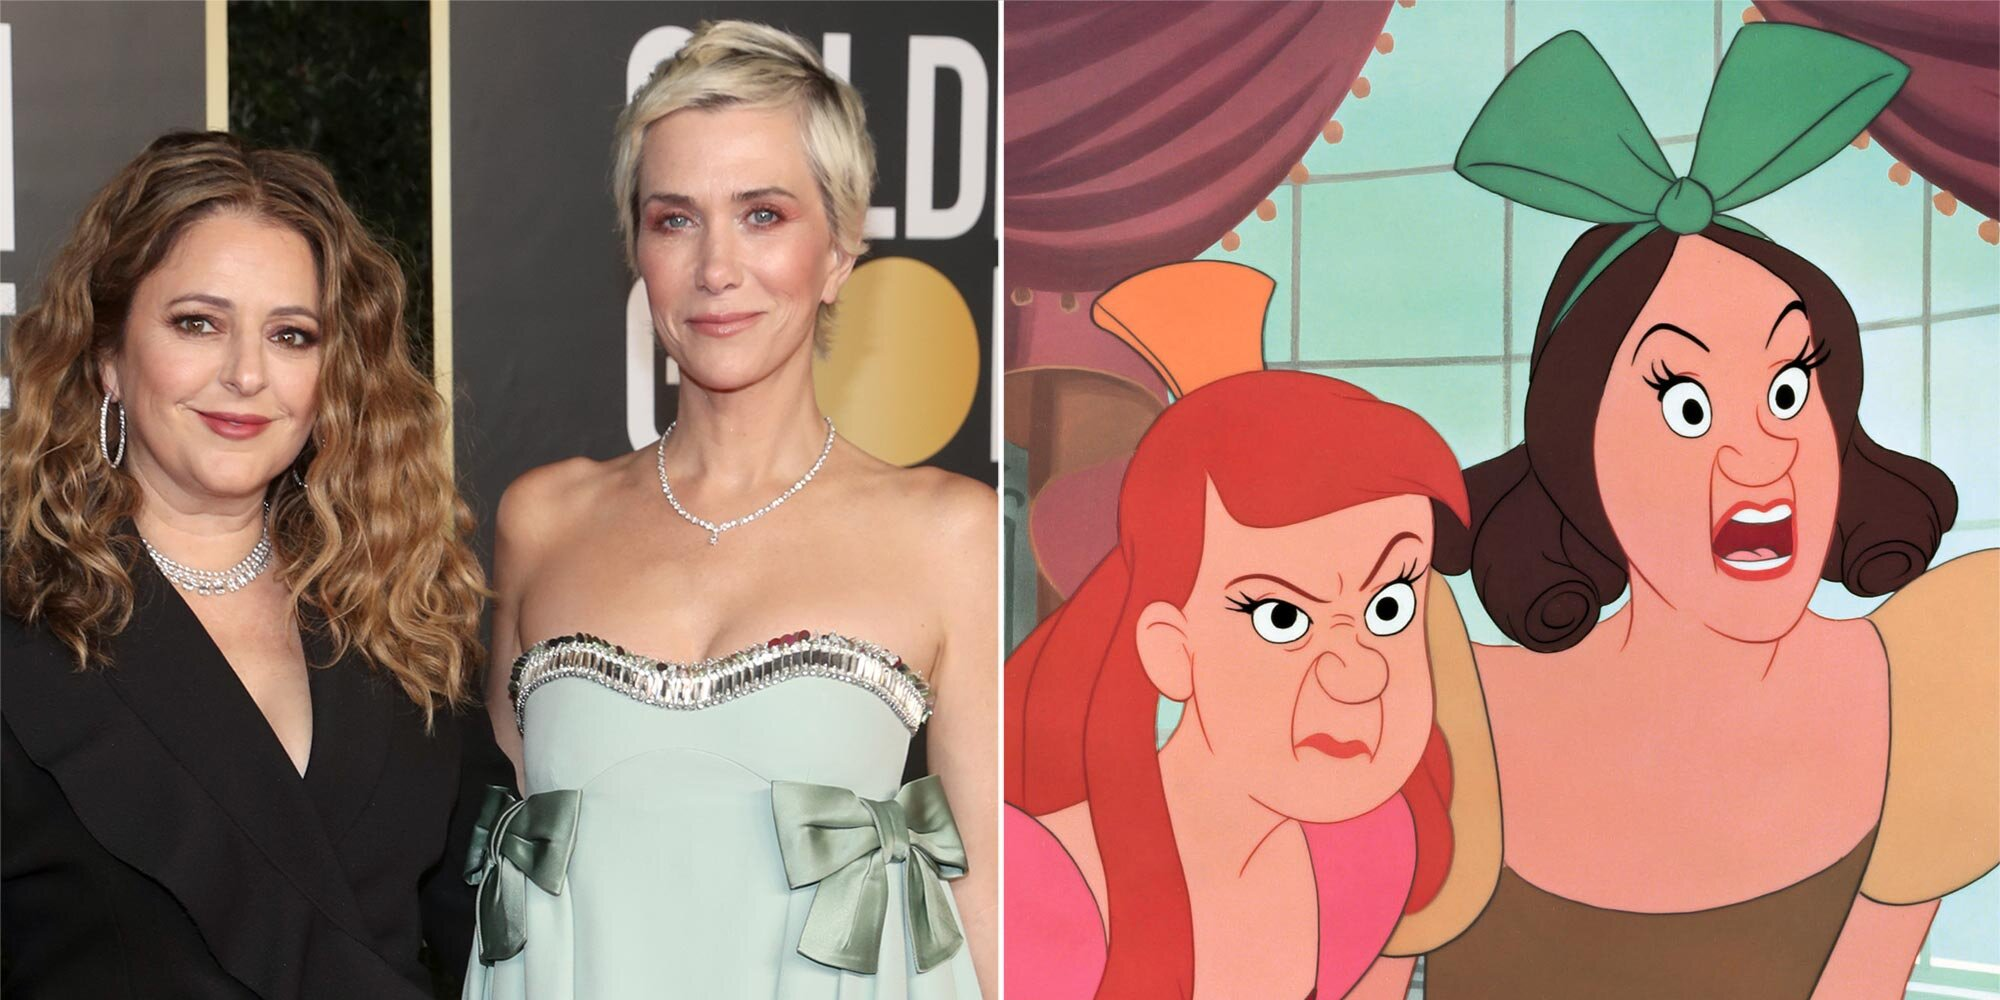 Kristen Wiig and Annie Mumolo are writing Disney film about Cinderella's evil stepsisters